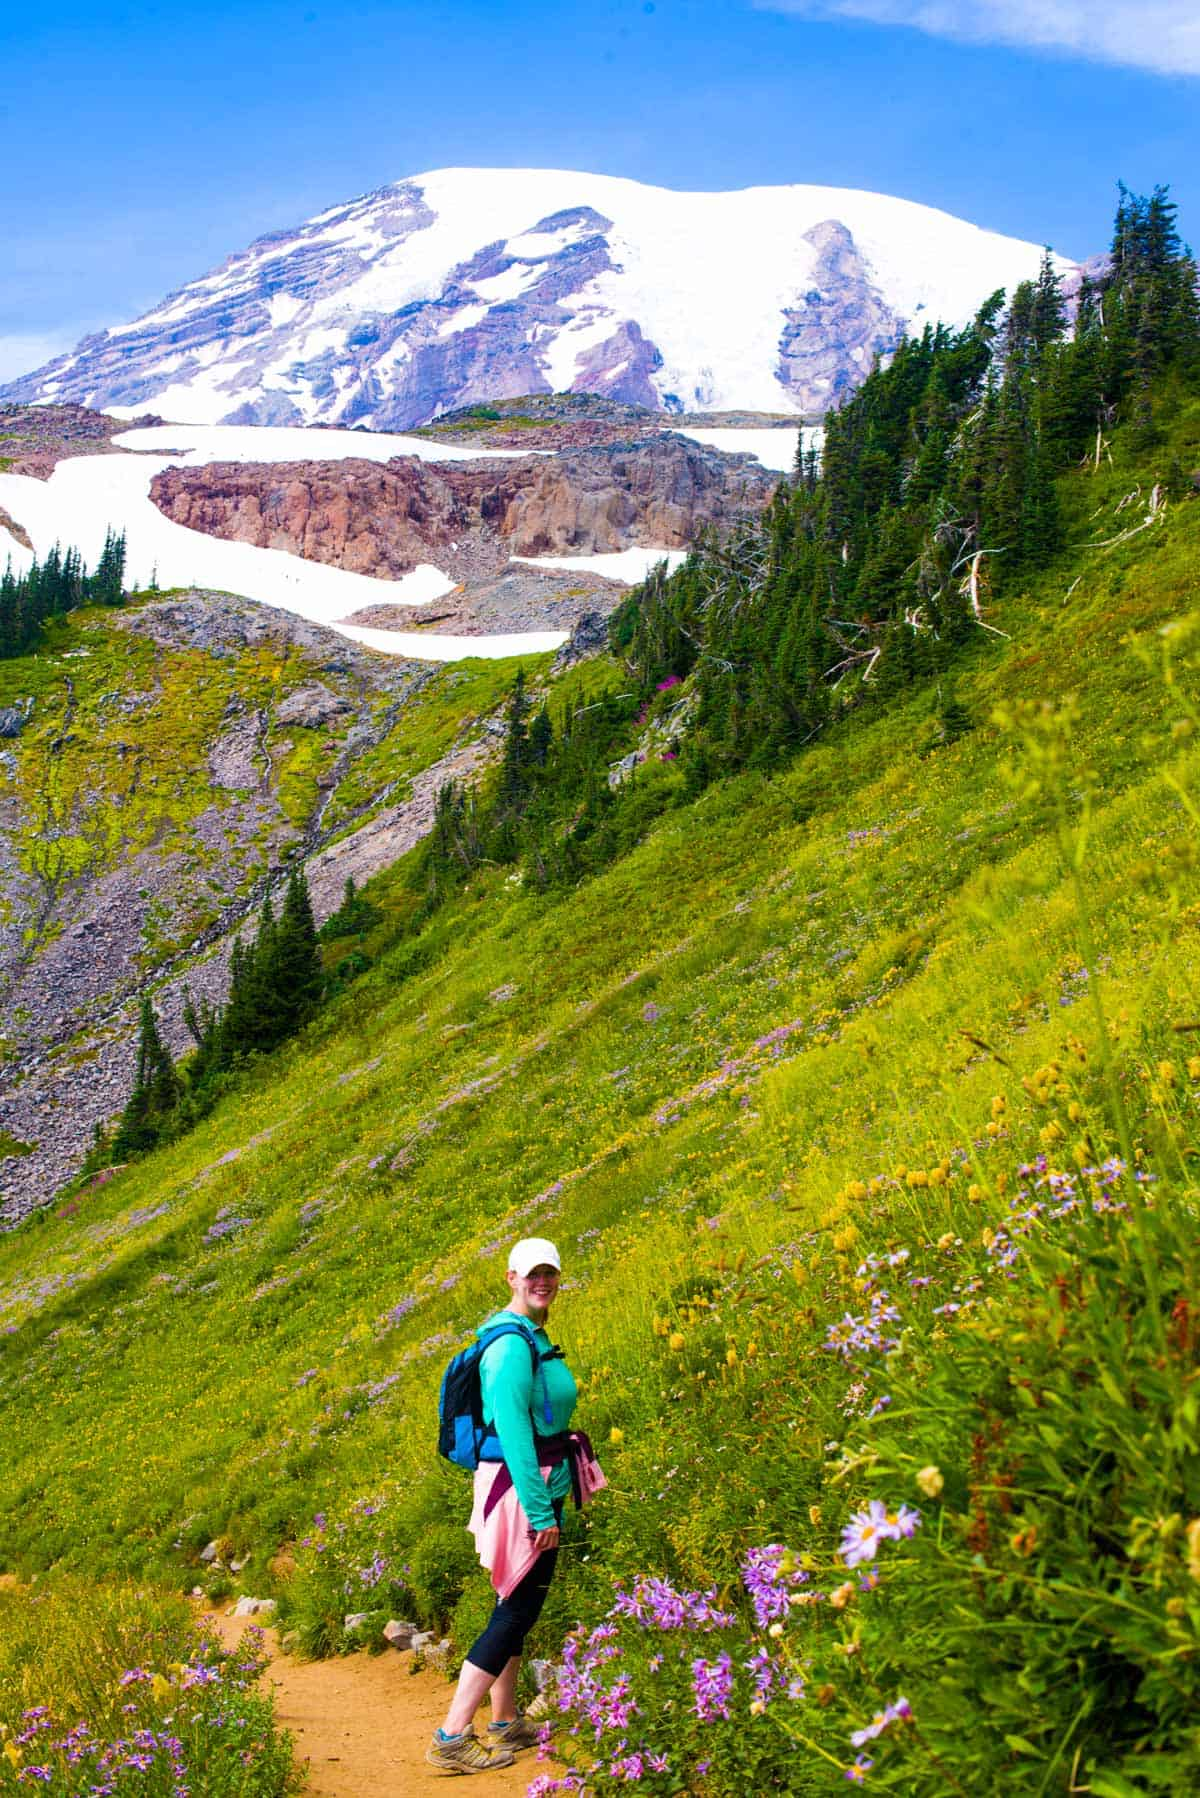 On the way down -- Skyline Trail, Mount Rainier